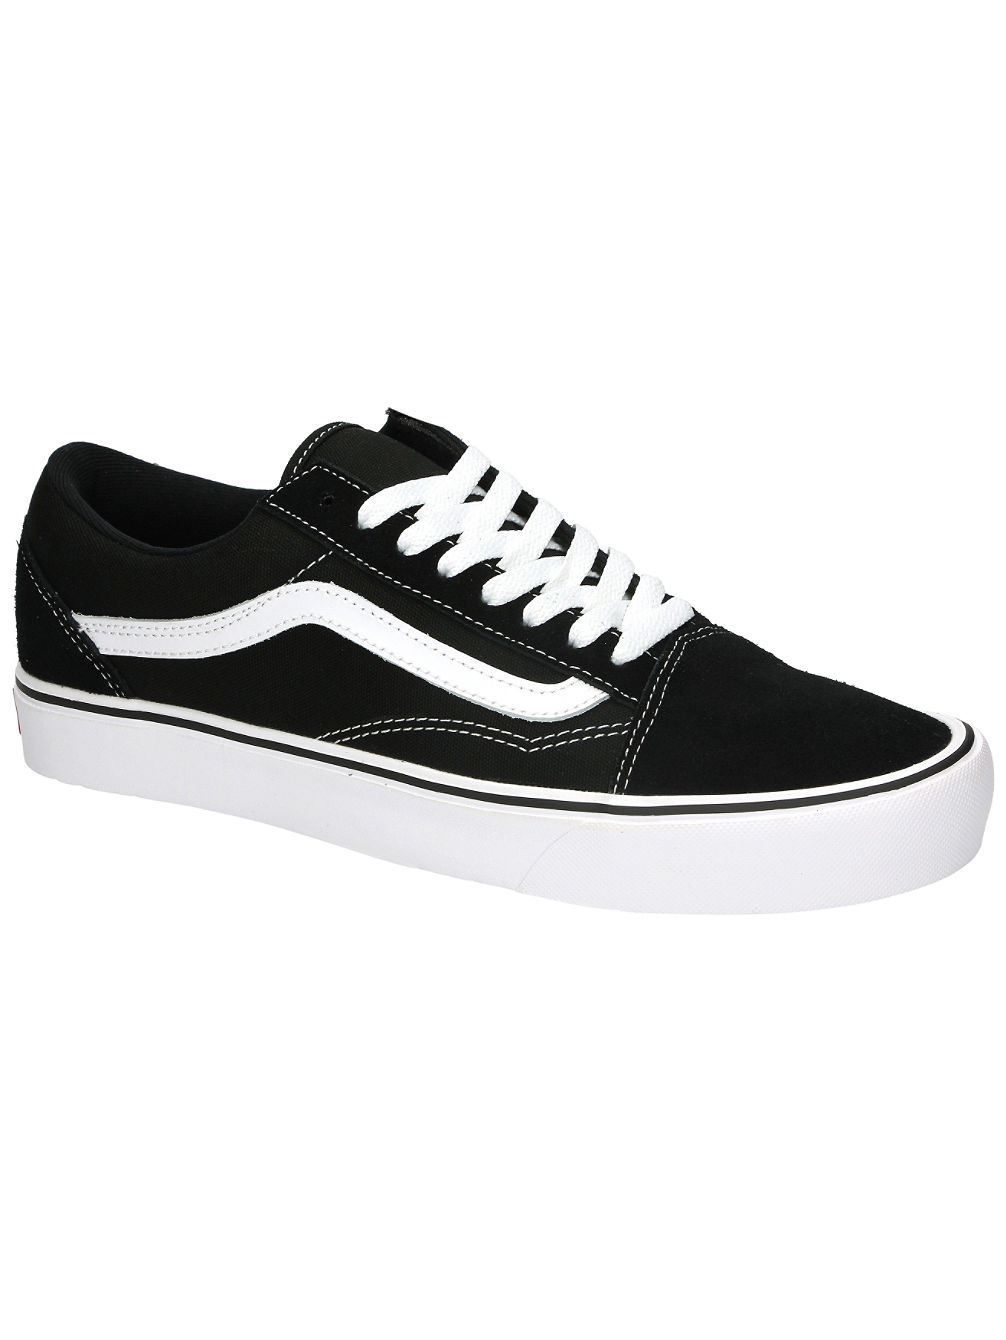 Suede Old Skool Lite Sneakers